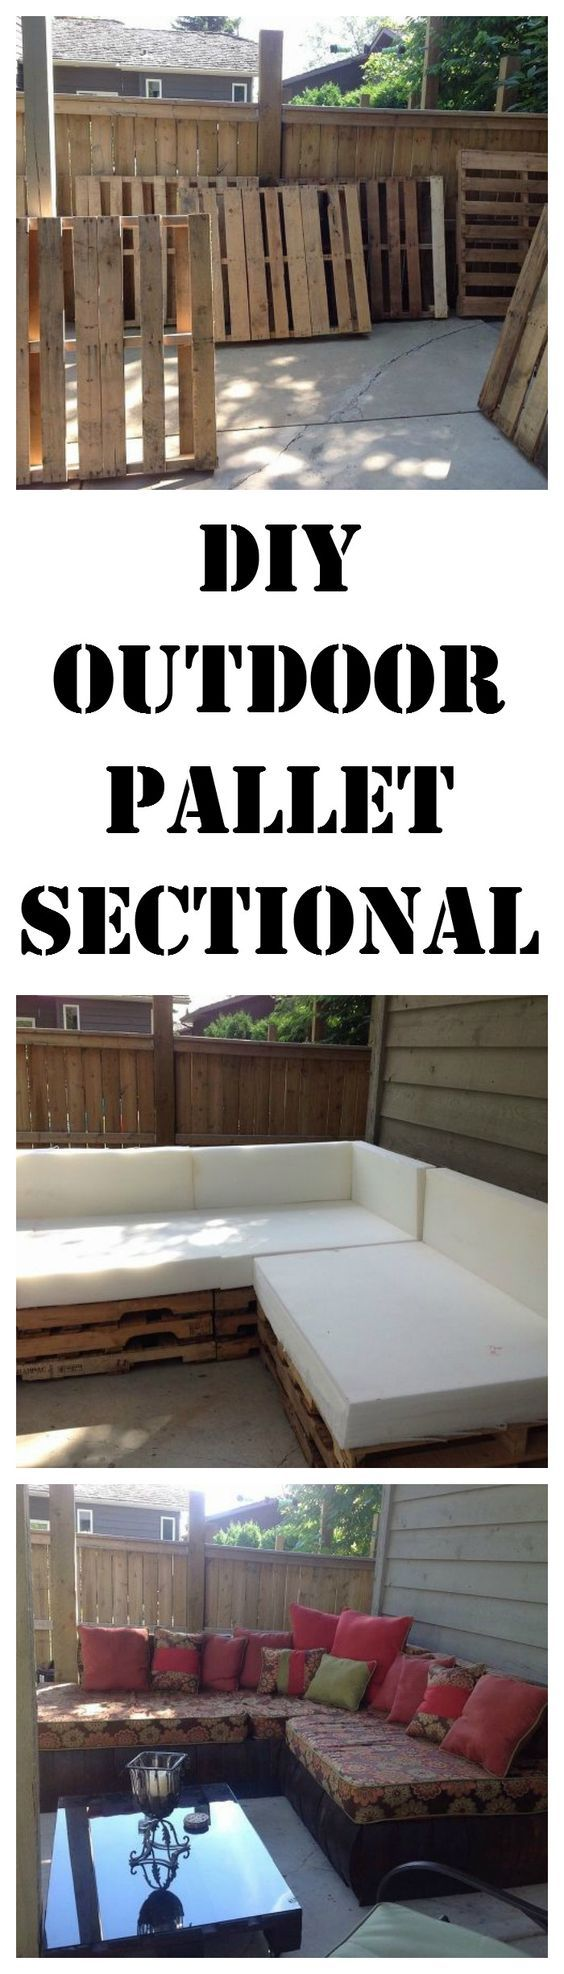 DIY an outdoor sectional from pallets.  http://www.hometalk.com/l/cHG: